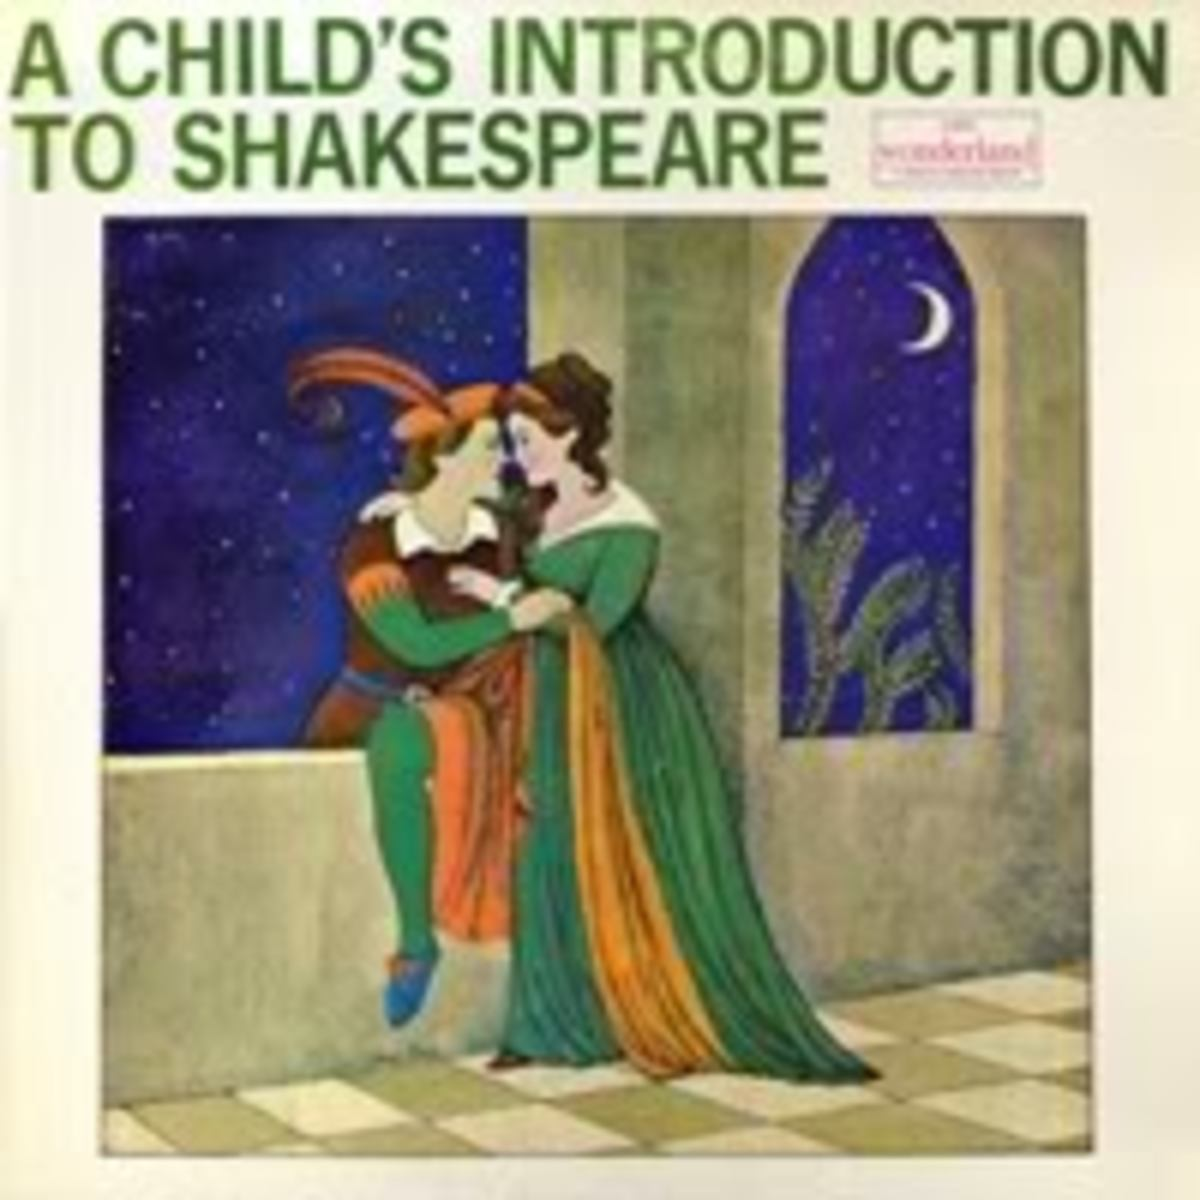 shakespeareforchildren